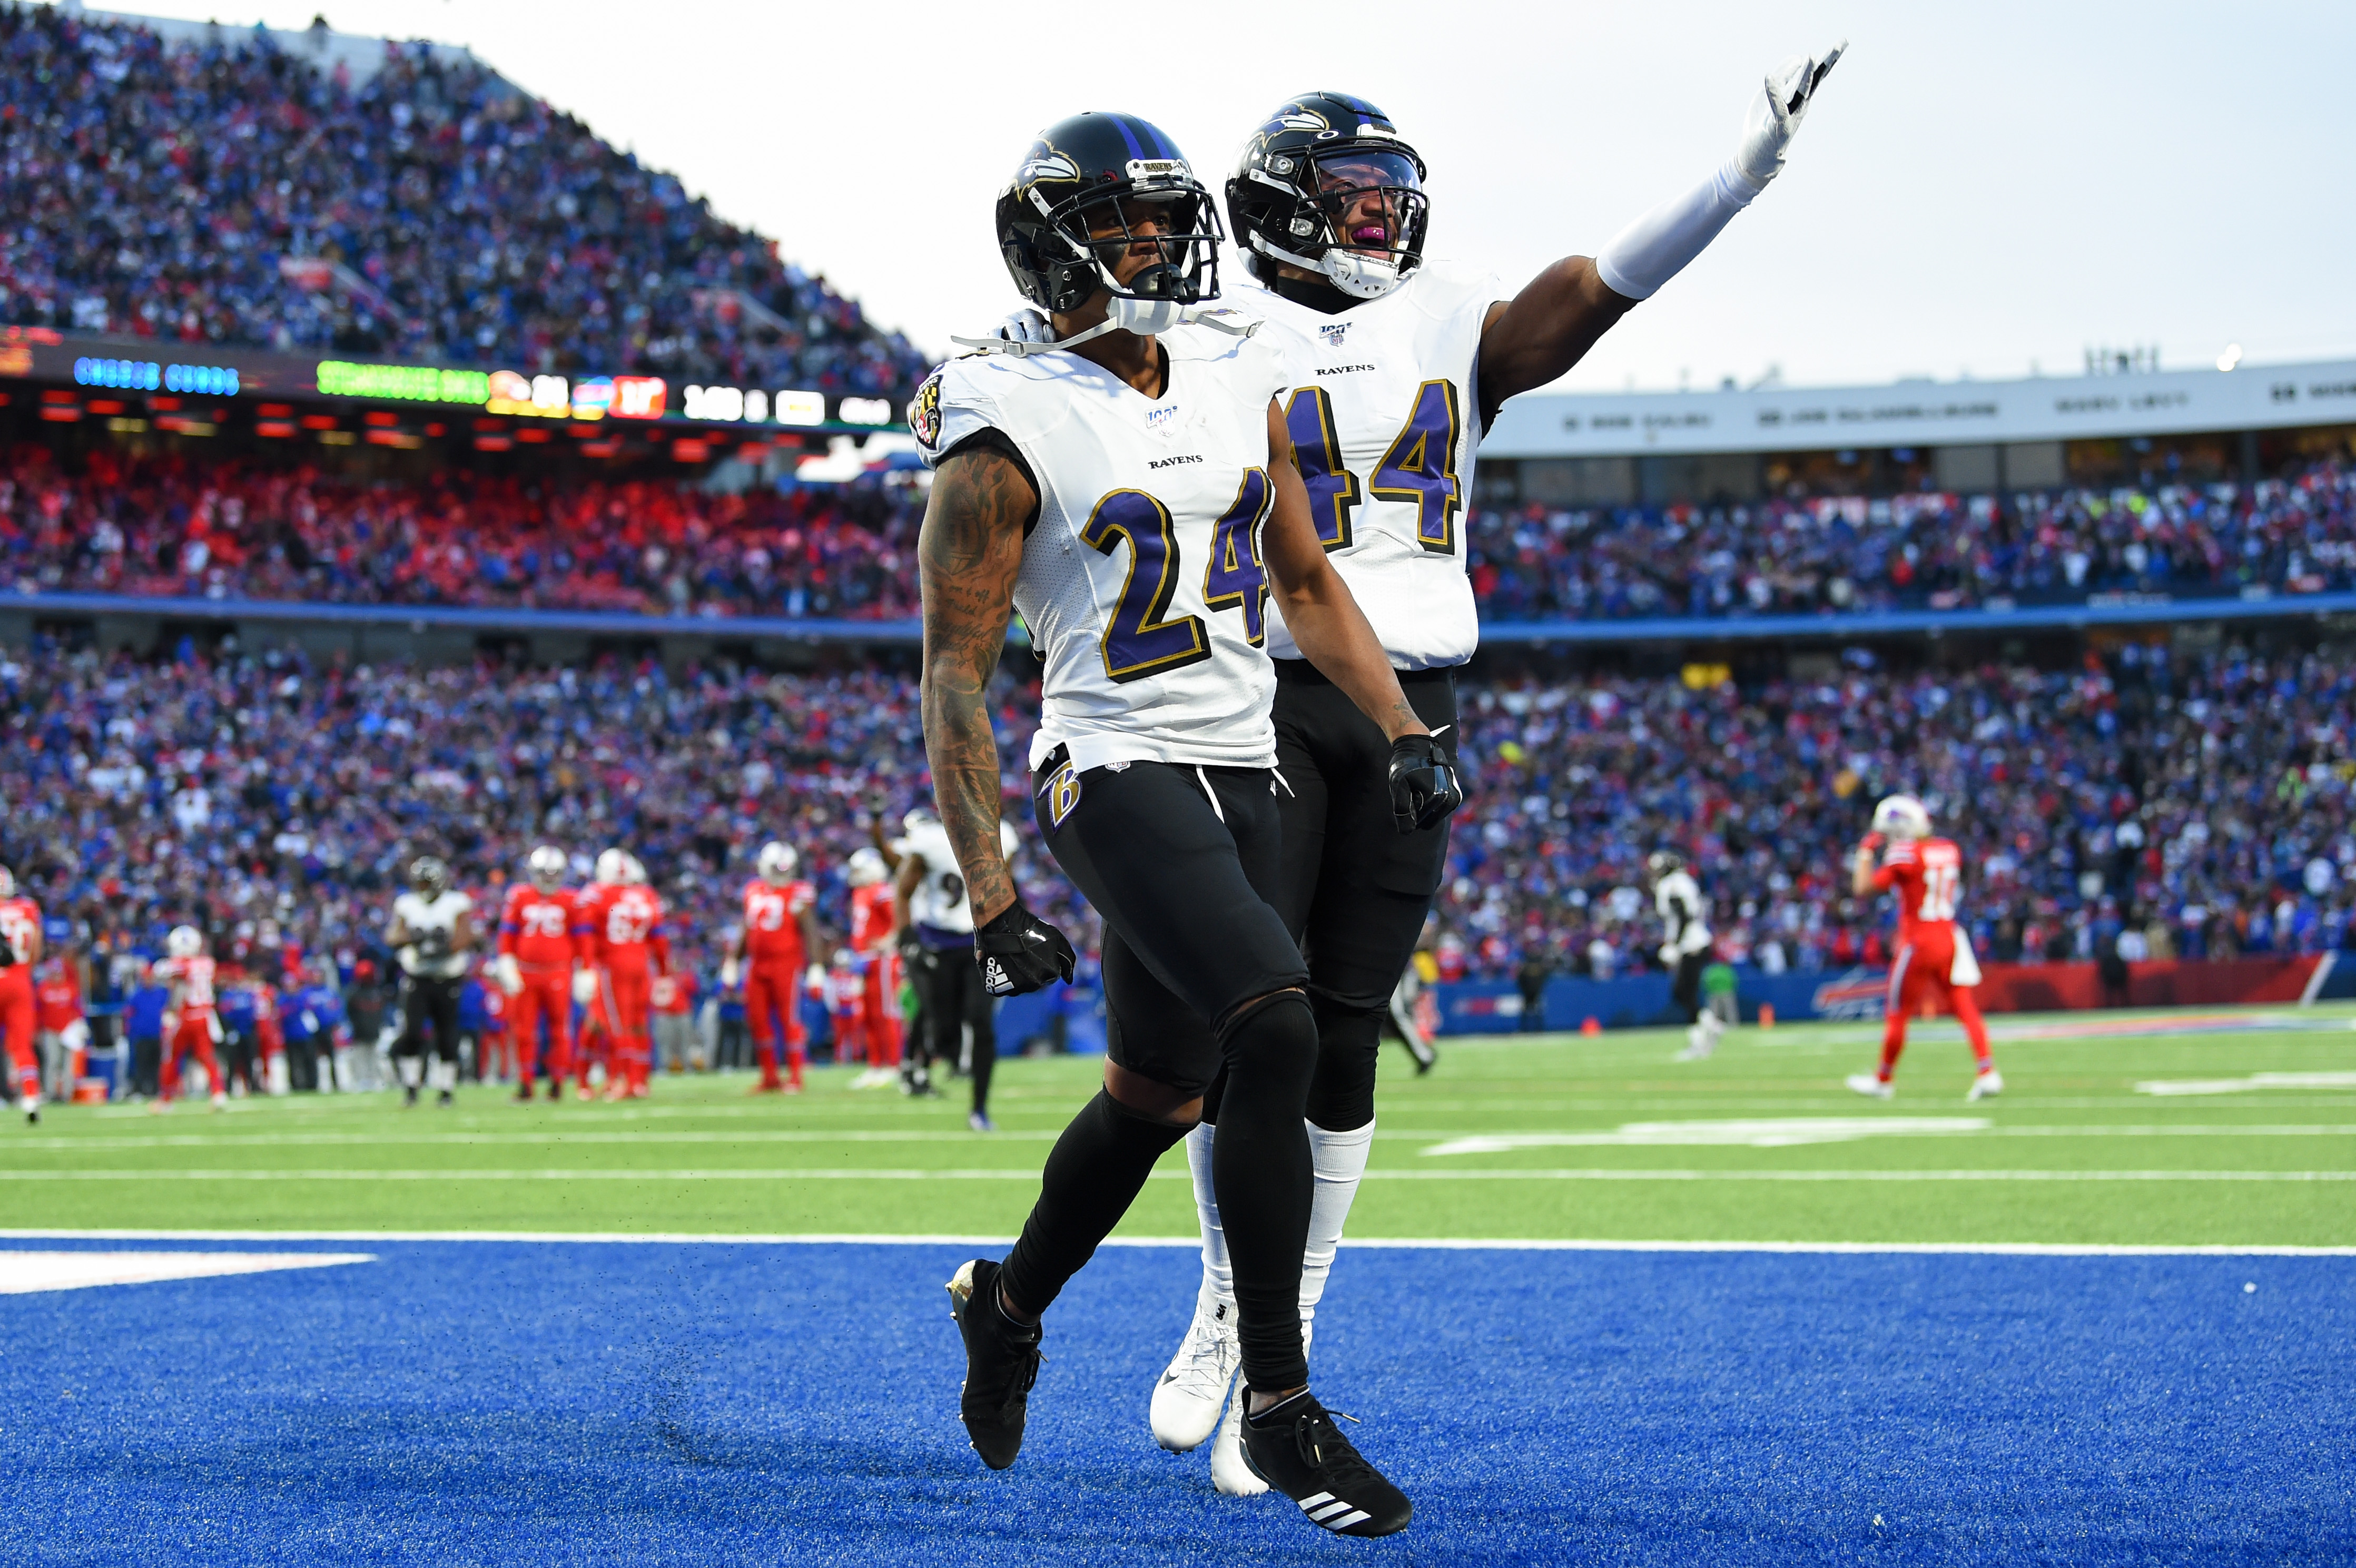 Ravens-Bills: What We Learned